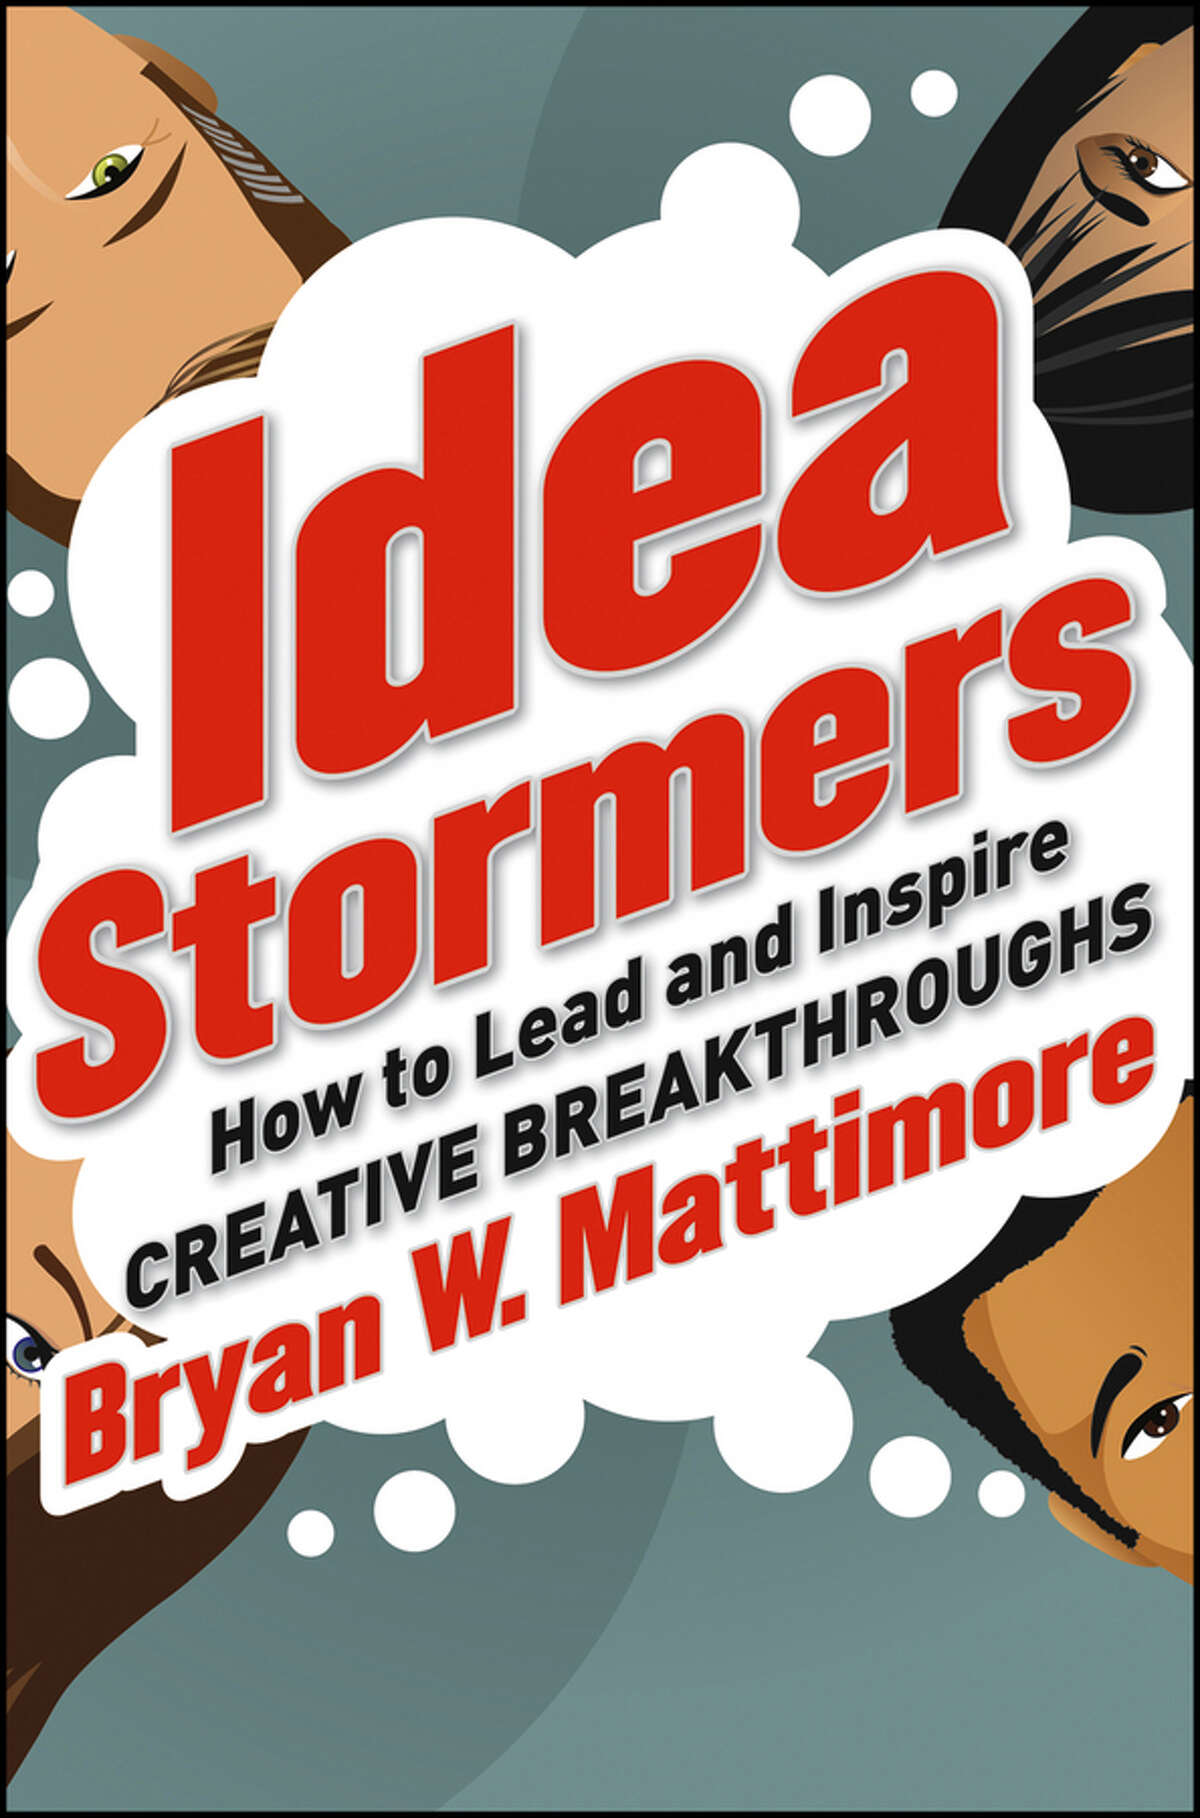 Stamford resident Bryan Mattimore, president and co-founder of The Growth Engine Co. in Norwalk, has written âÄúIdea Stormers,âÄù a book about how businesses can get new ideas through brainstorming sessions with employees.